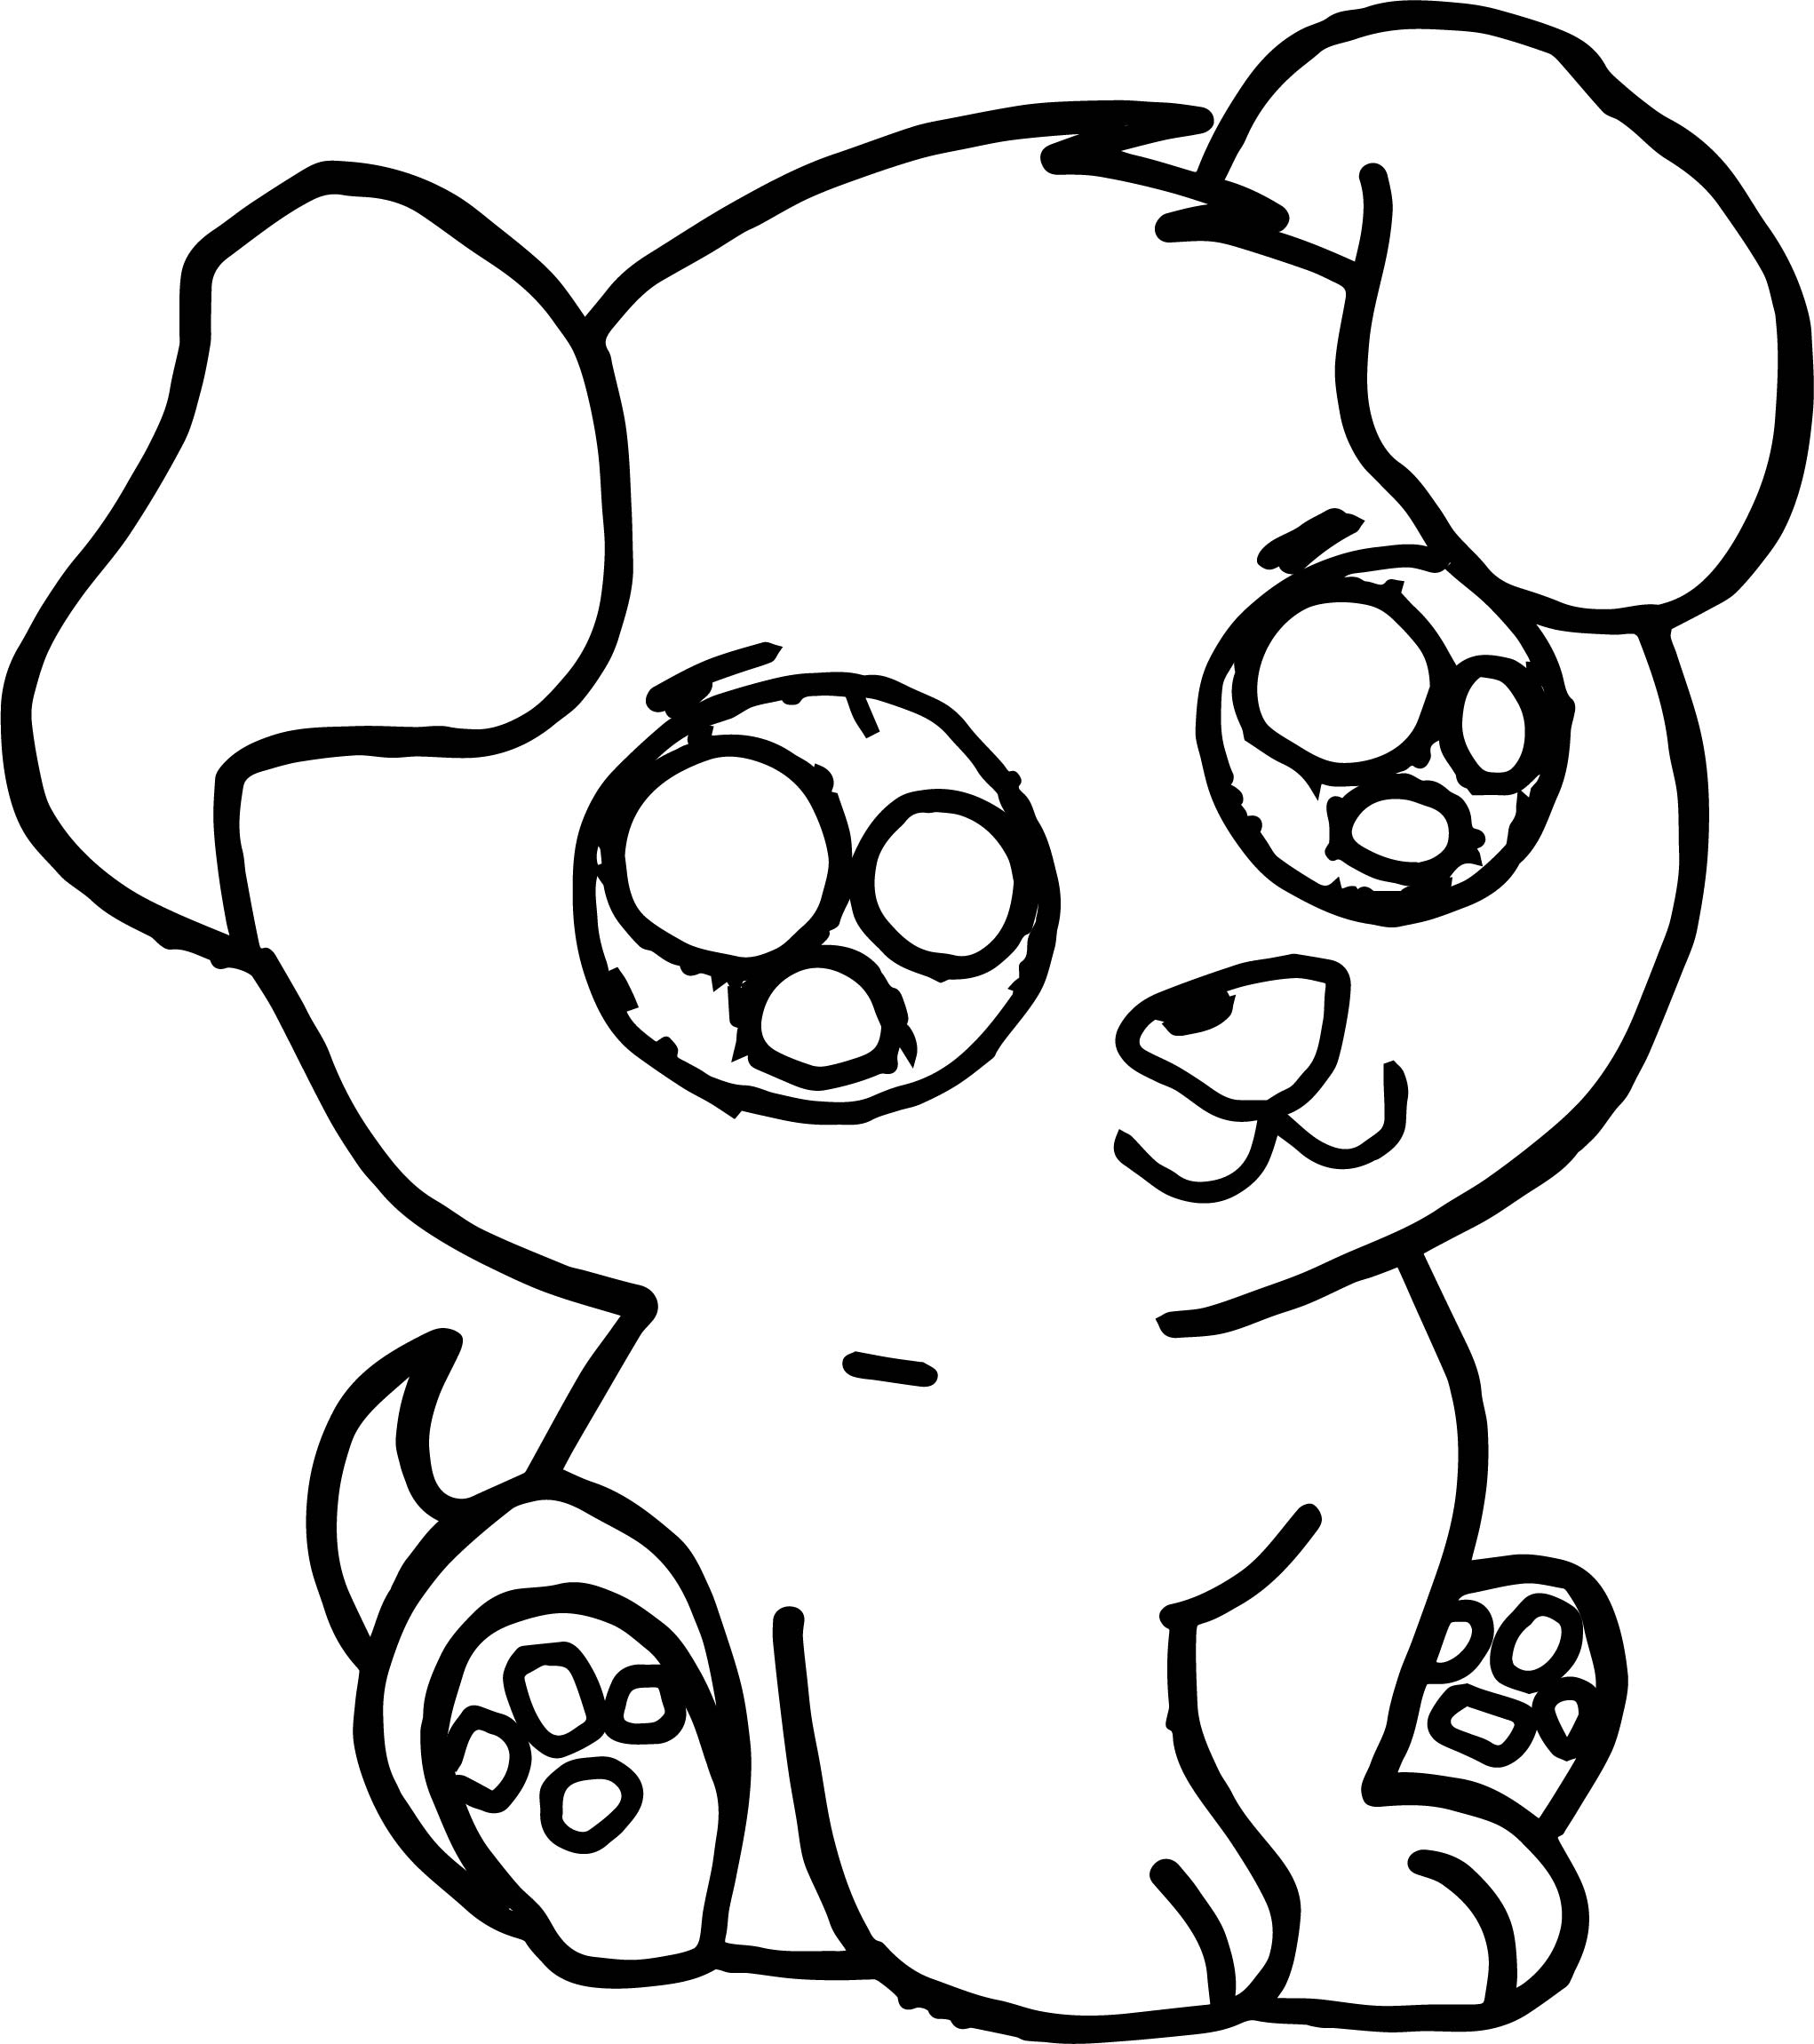 dog color page dog breed coloring pages page color dog